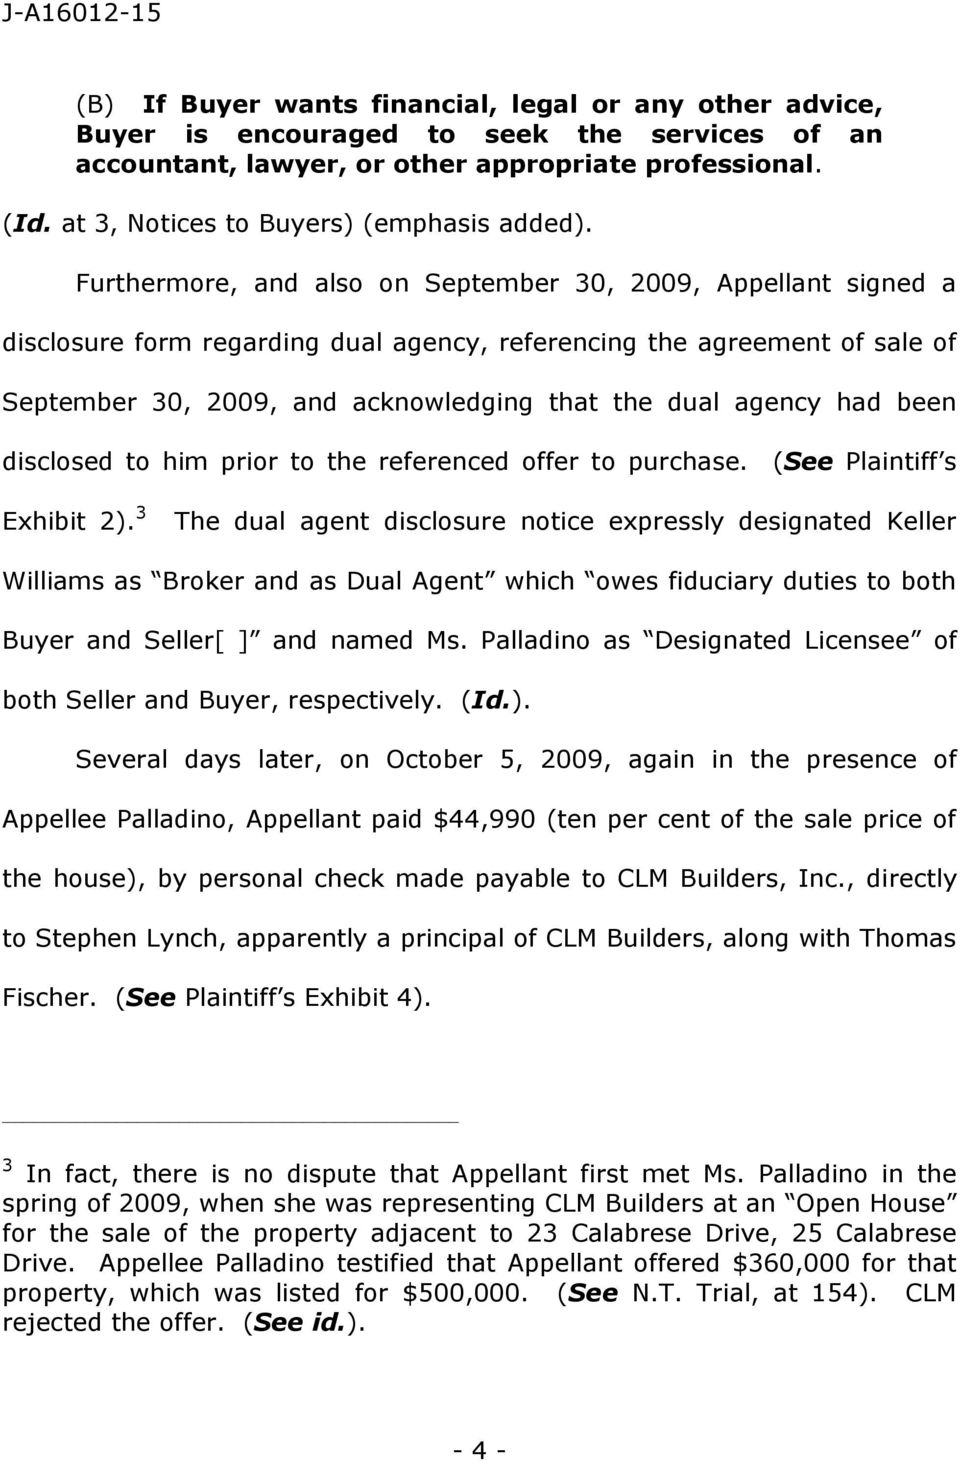 Furthermore, and also on September 30, 2009, Appellant signed a disclosure form regarding dual agency, referencing the agreement of sale of September 30, 2009, and acknowledging that the dual agency